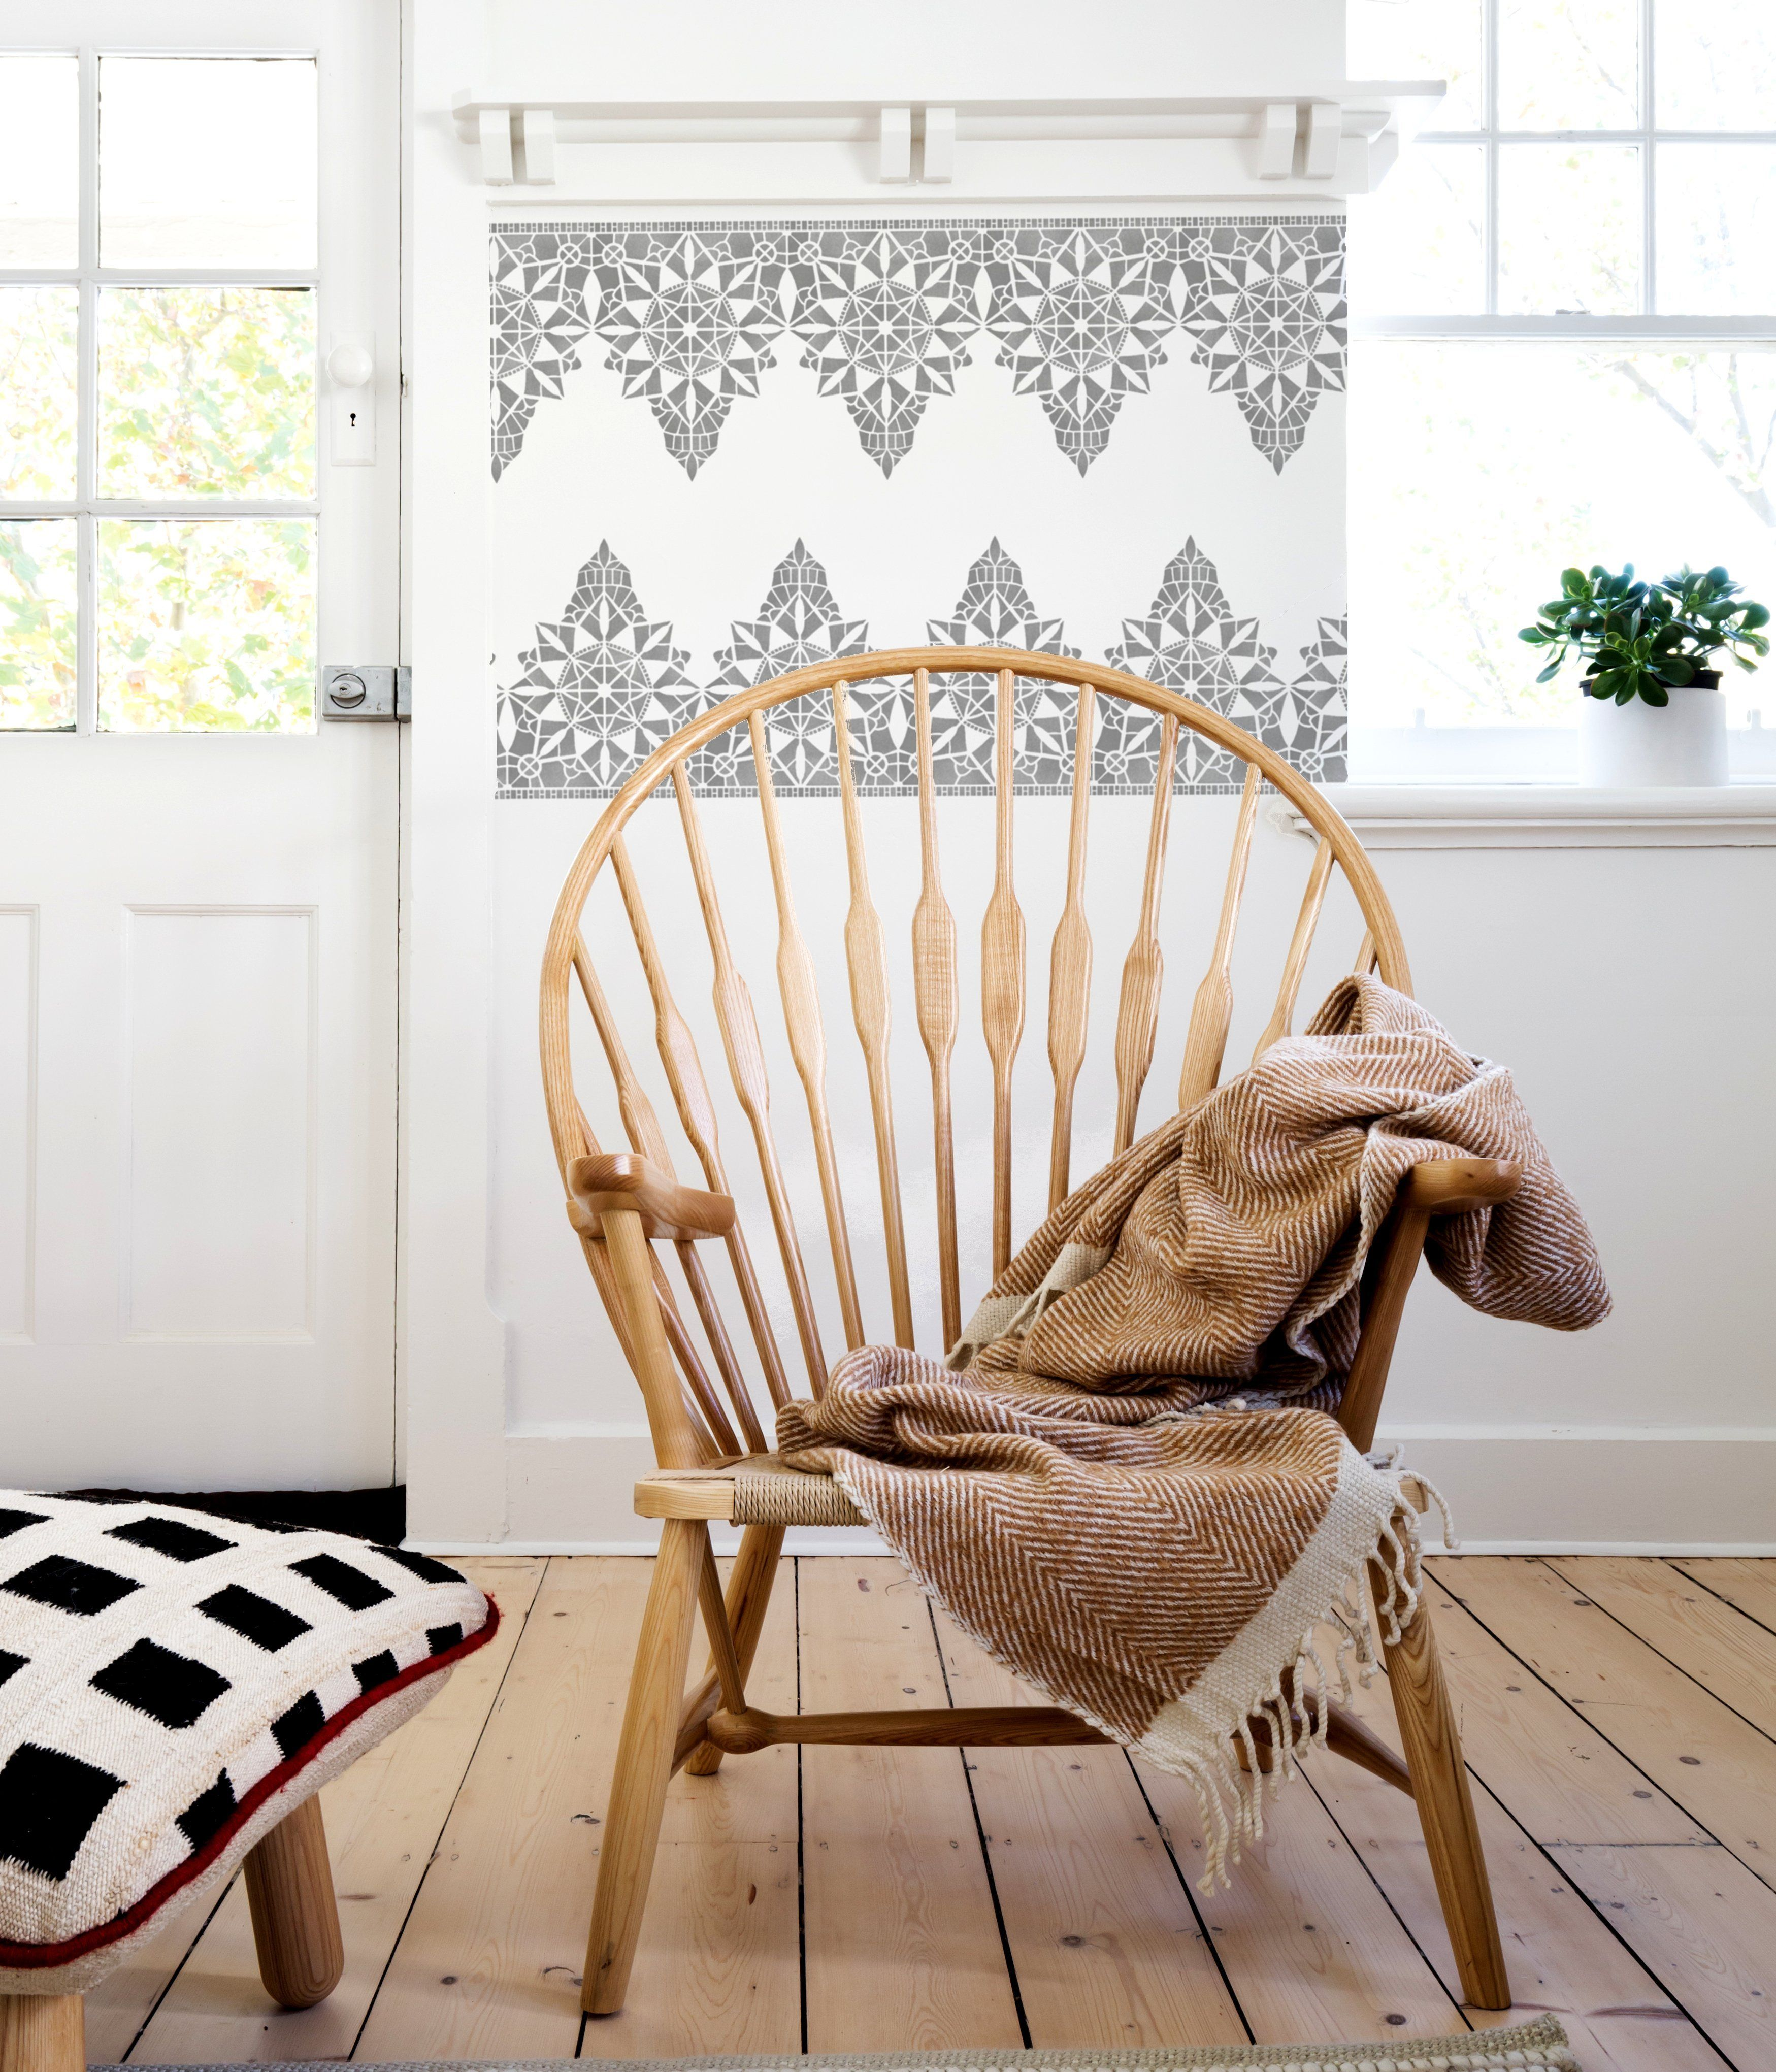 MACRAME Border Stencil Stencil furniture, Furniture